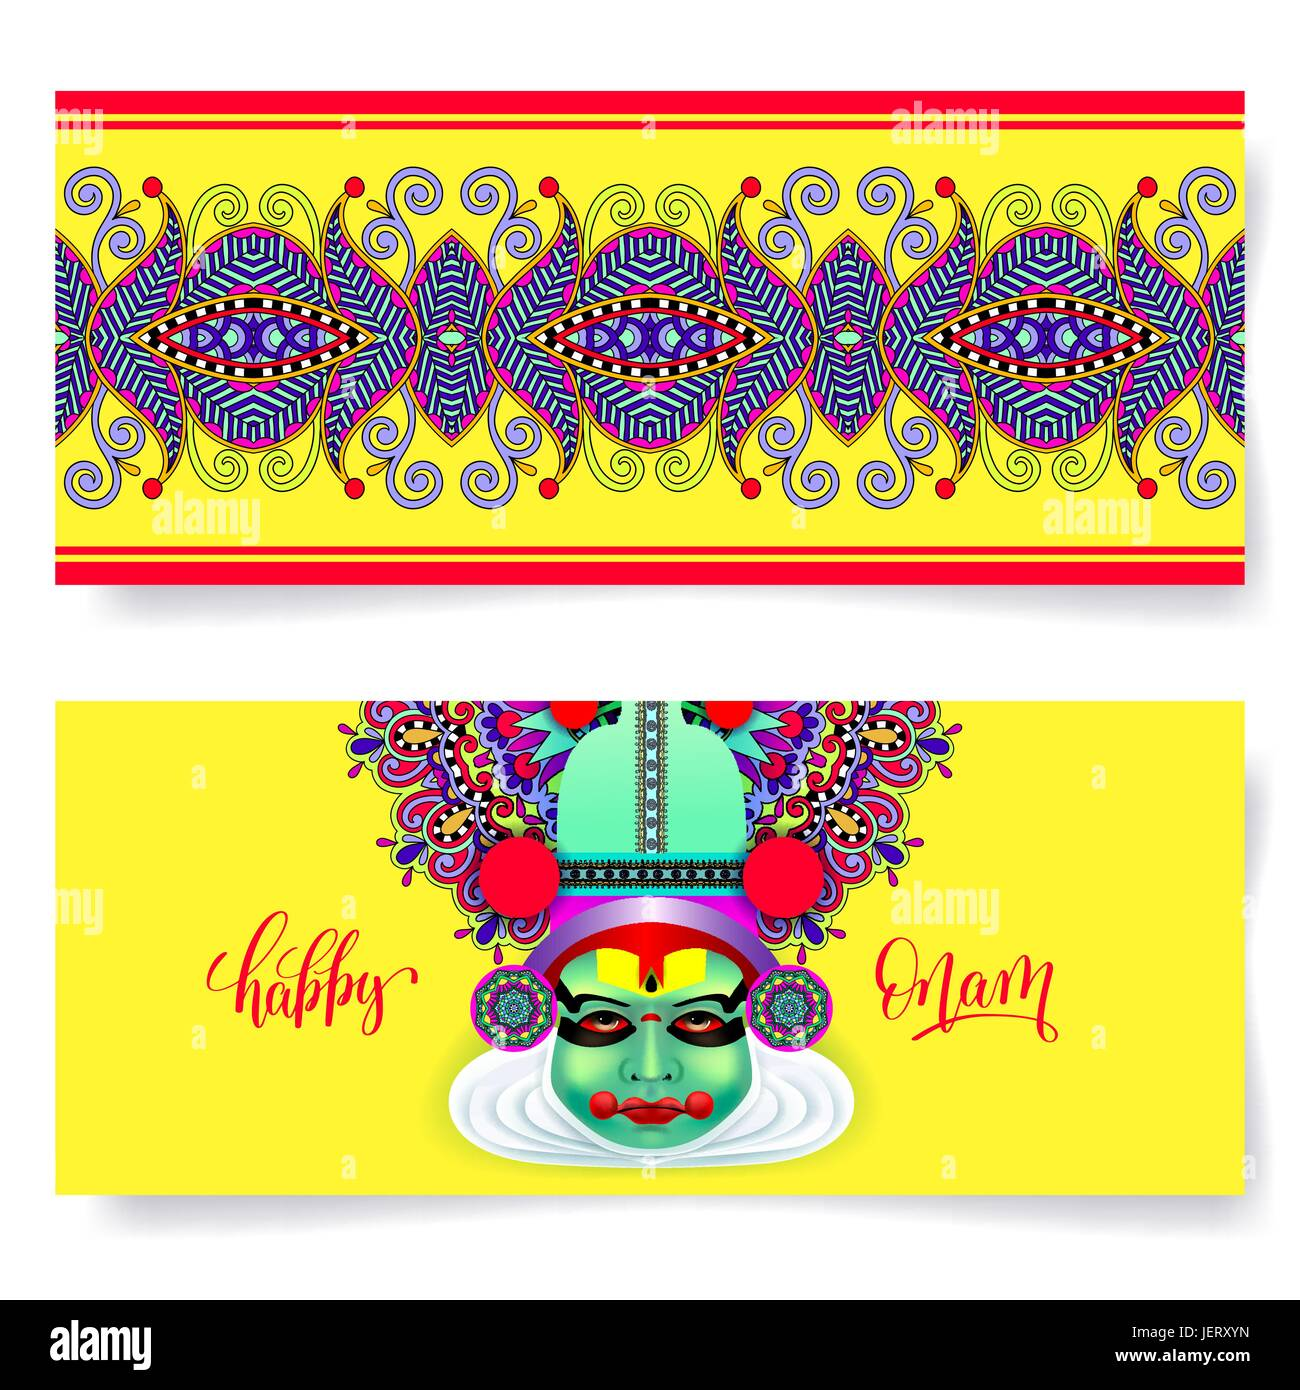 Happy Onam Holiday Horizontal Greeting Card Banner Design Stock